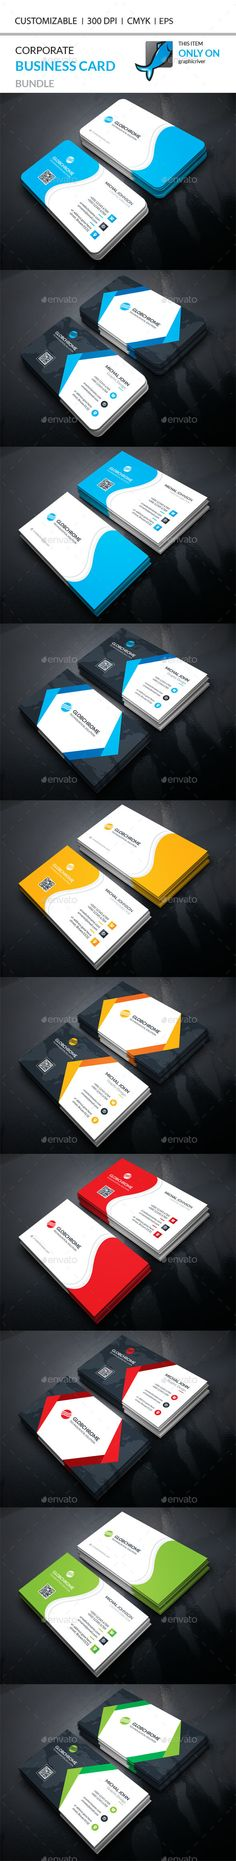 Corporate Business Card Template Vector EPS, AI Illustrator Bundle. Download here: https://graphicriver.net/item/corporate-business-card-bundle/17368204?ref=ksioks